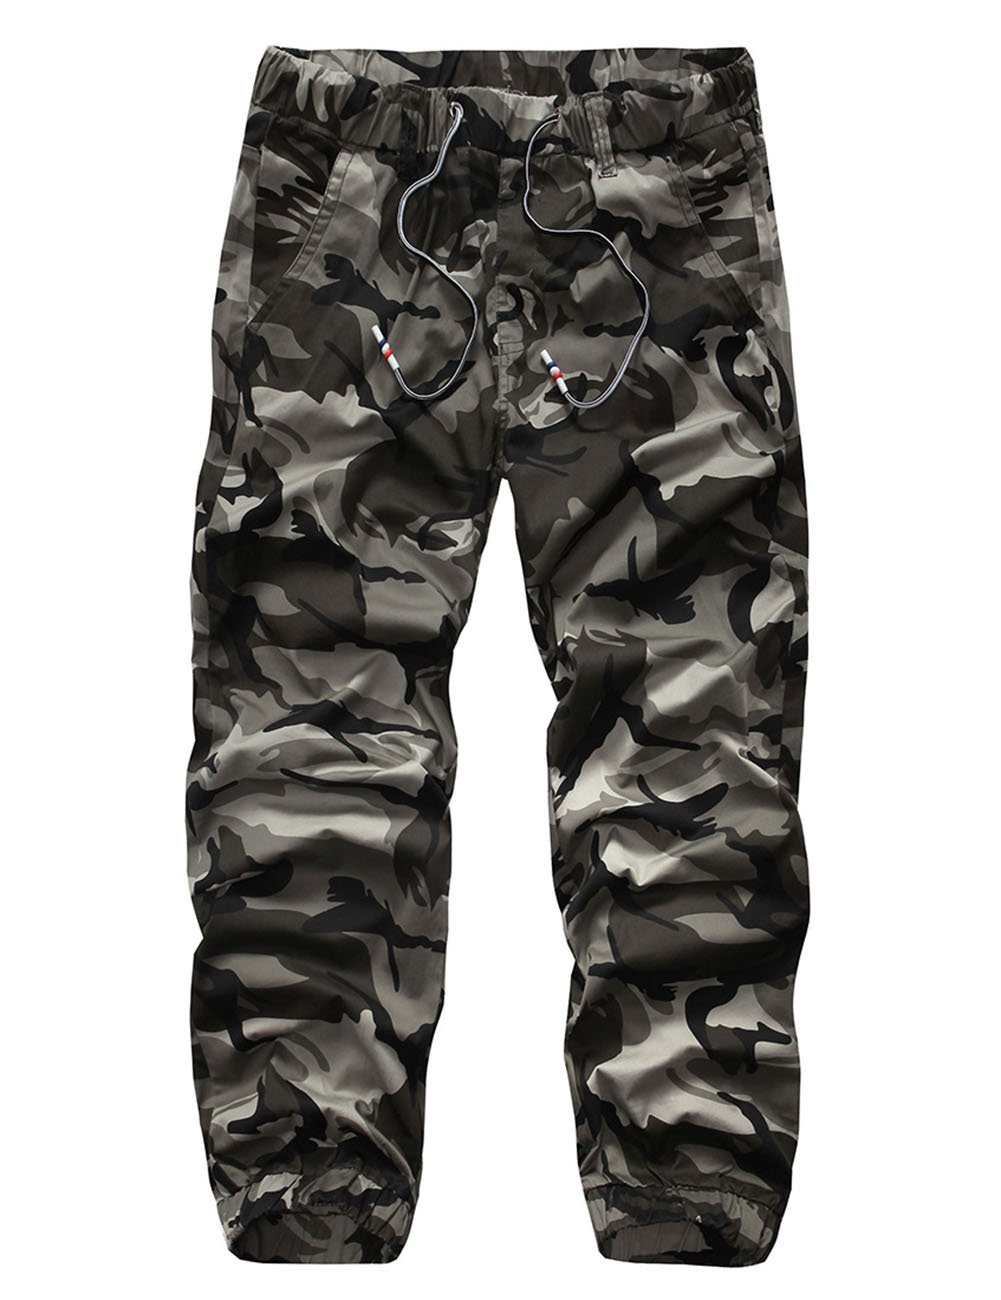 Men's Camouflage Elastic Waist Cotton Overalls Pants